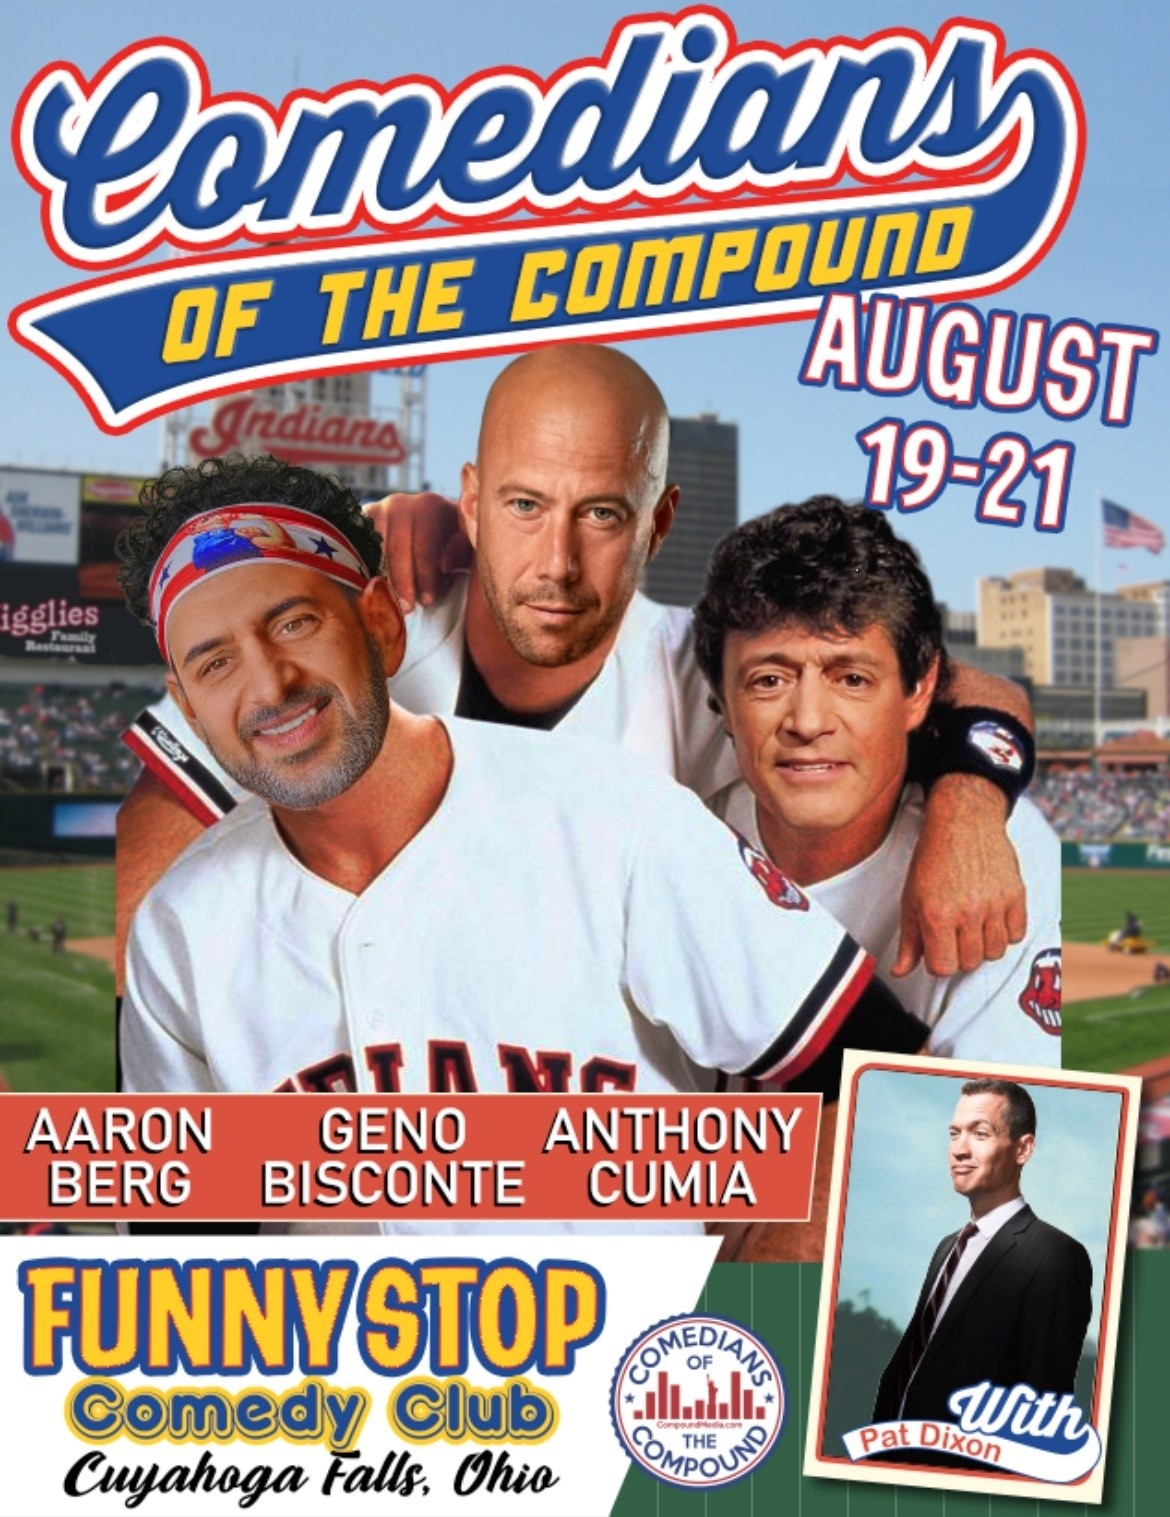 Comedians Of the Compound  8 PM Show Funny Stop Comedy Club on ago. 19, 20:00@Funny Stop Comedy Club - Buy tickets and Get information on Funny Stop funnystop.online